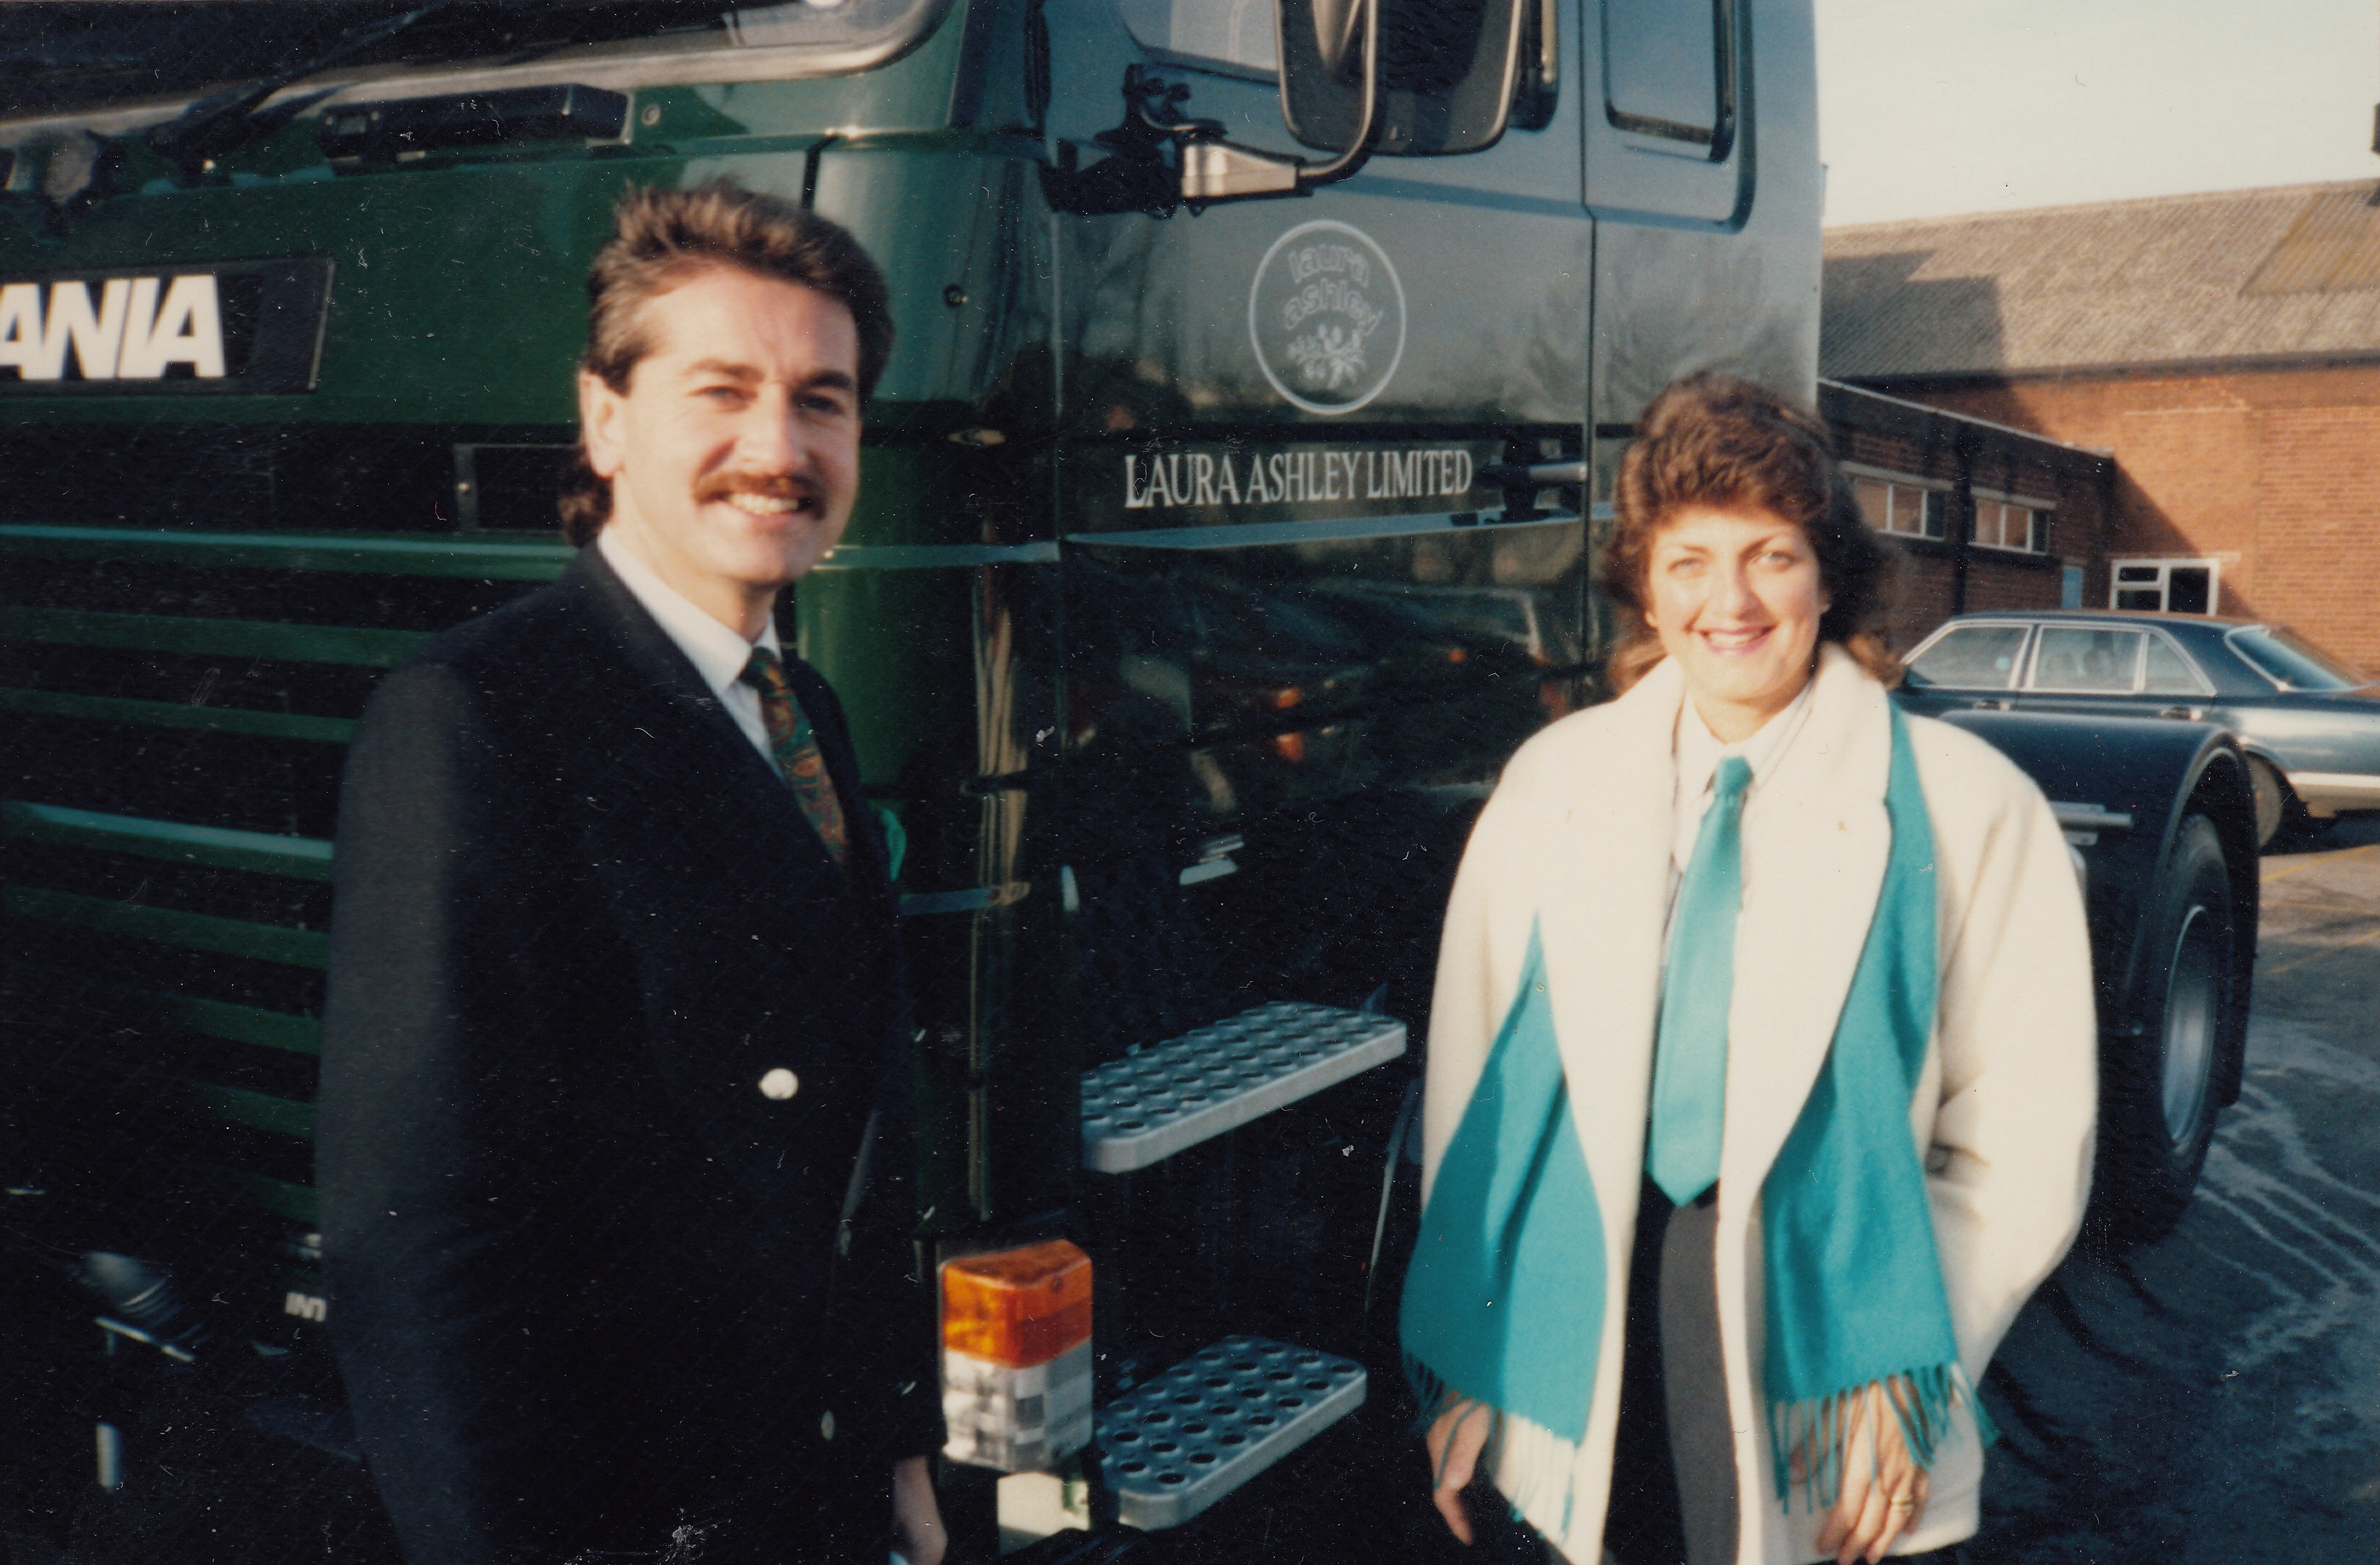 Chris Kelly & Sonia Kelly in August 1986.